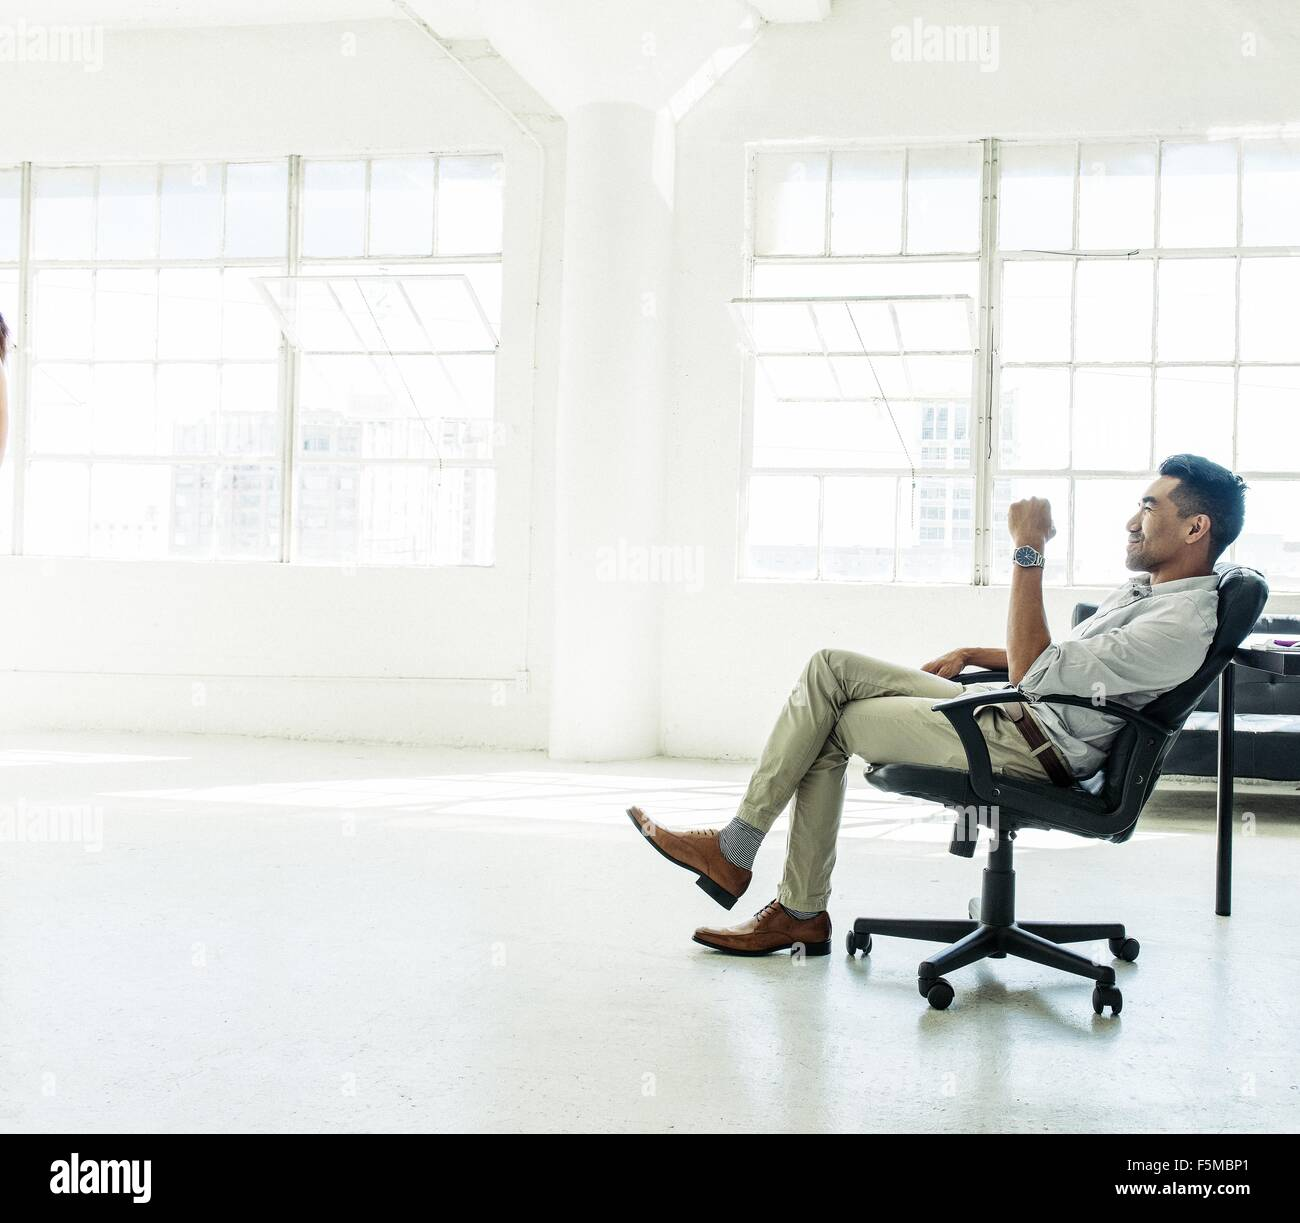 Businessman contemplating by office window - Stock Image